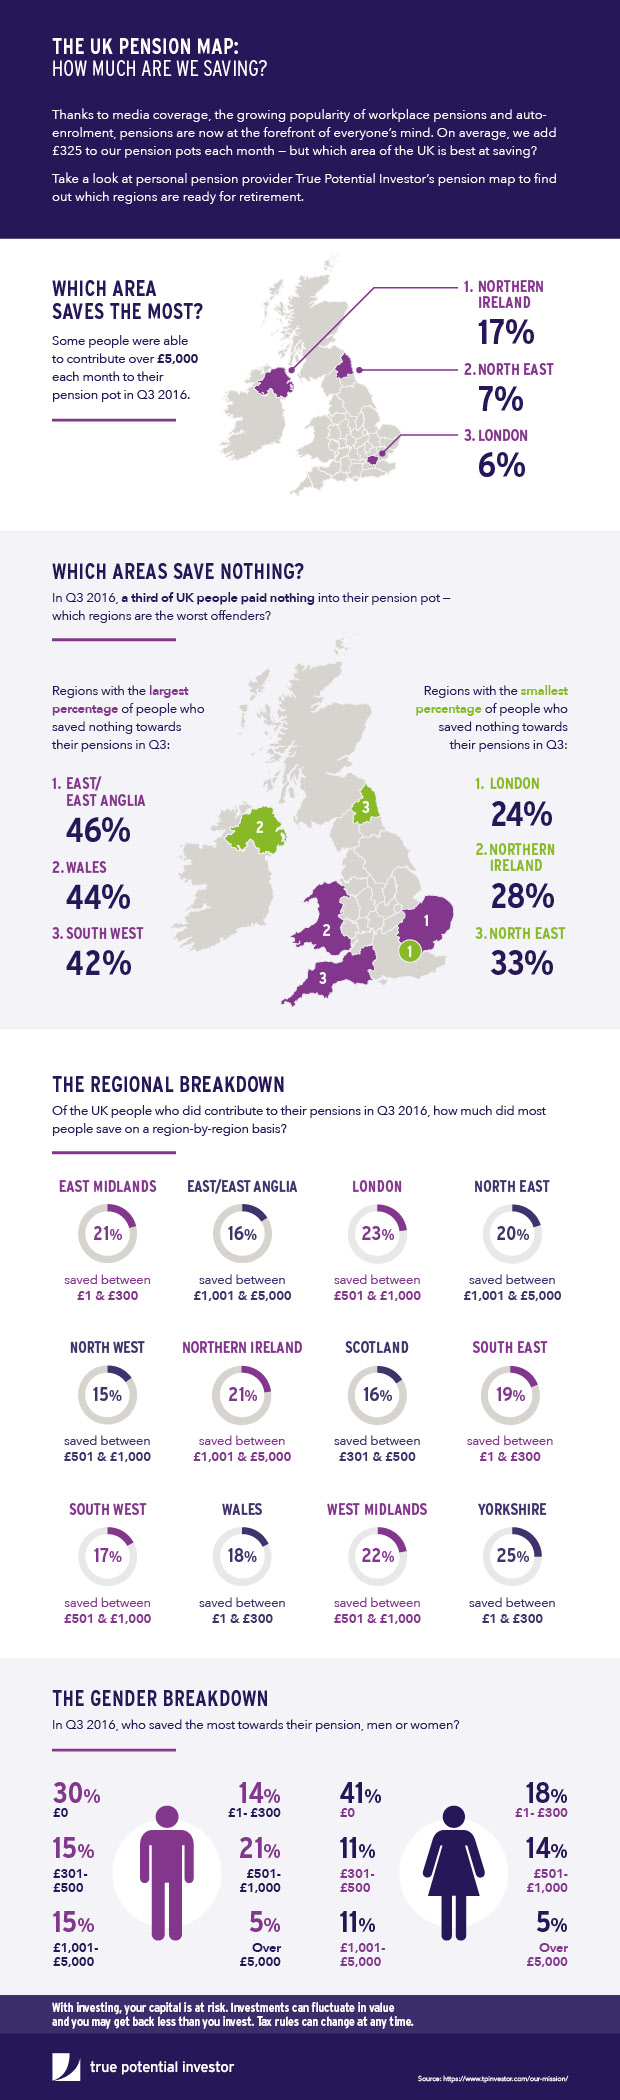 True Potential - UK Pension map